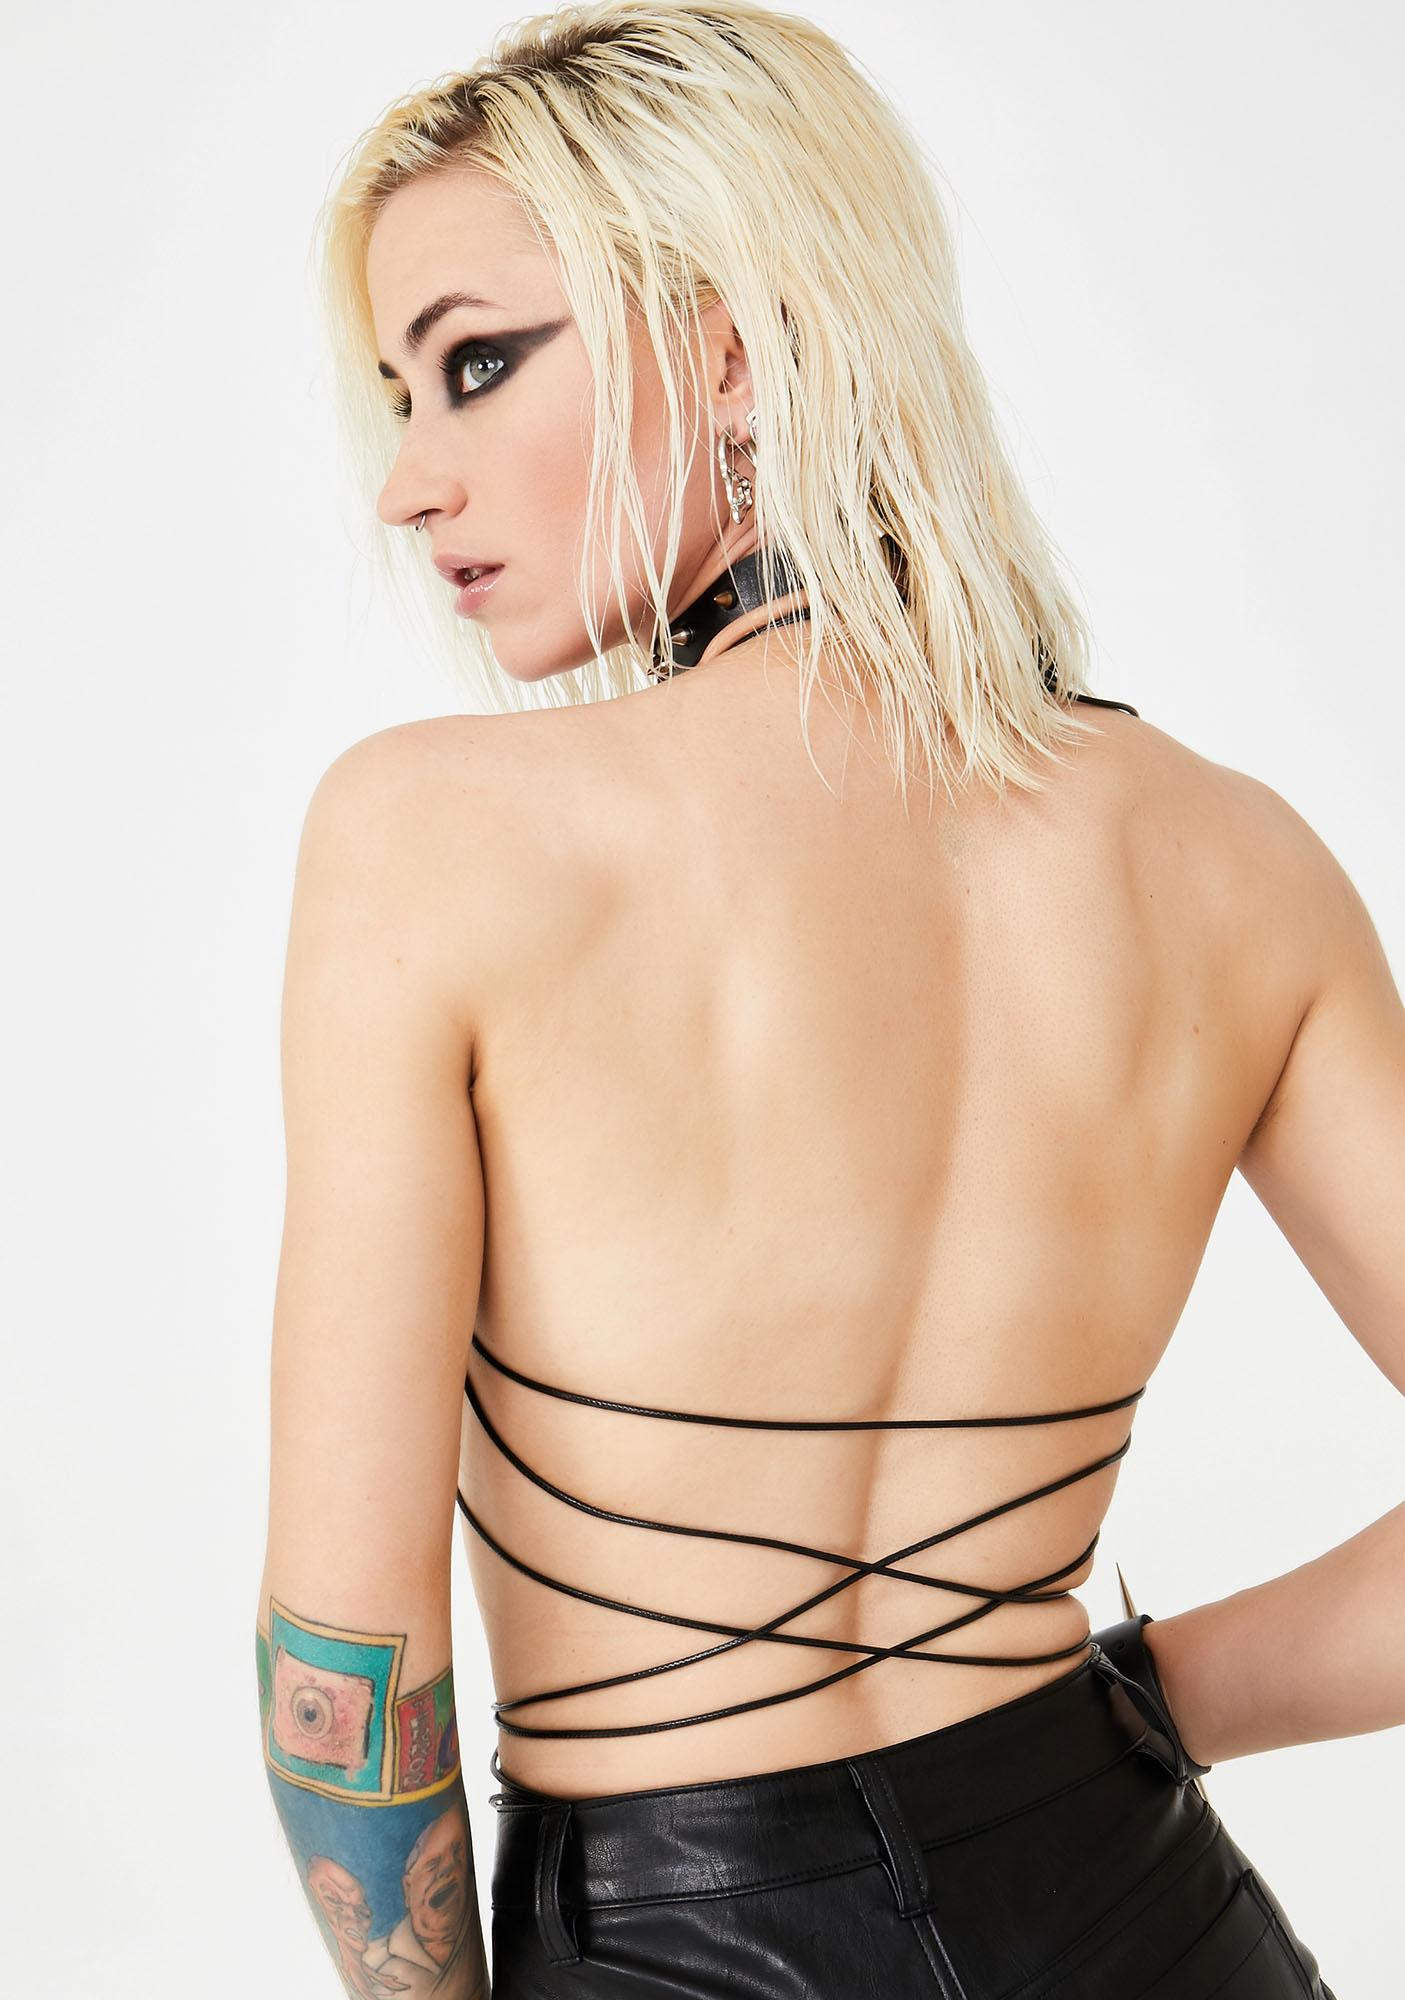 Club Exx Wastelands Spiked Bra Top